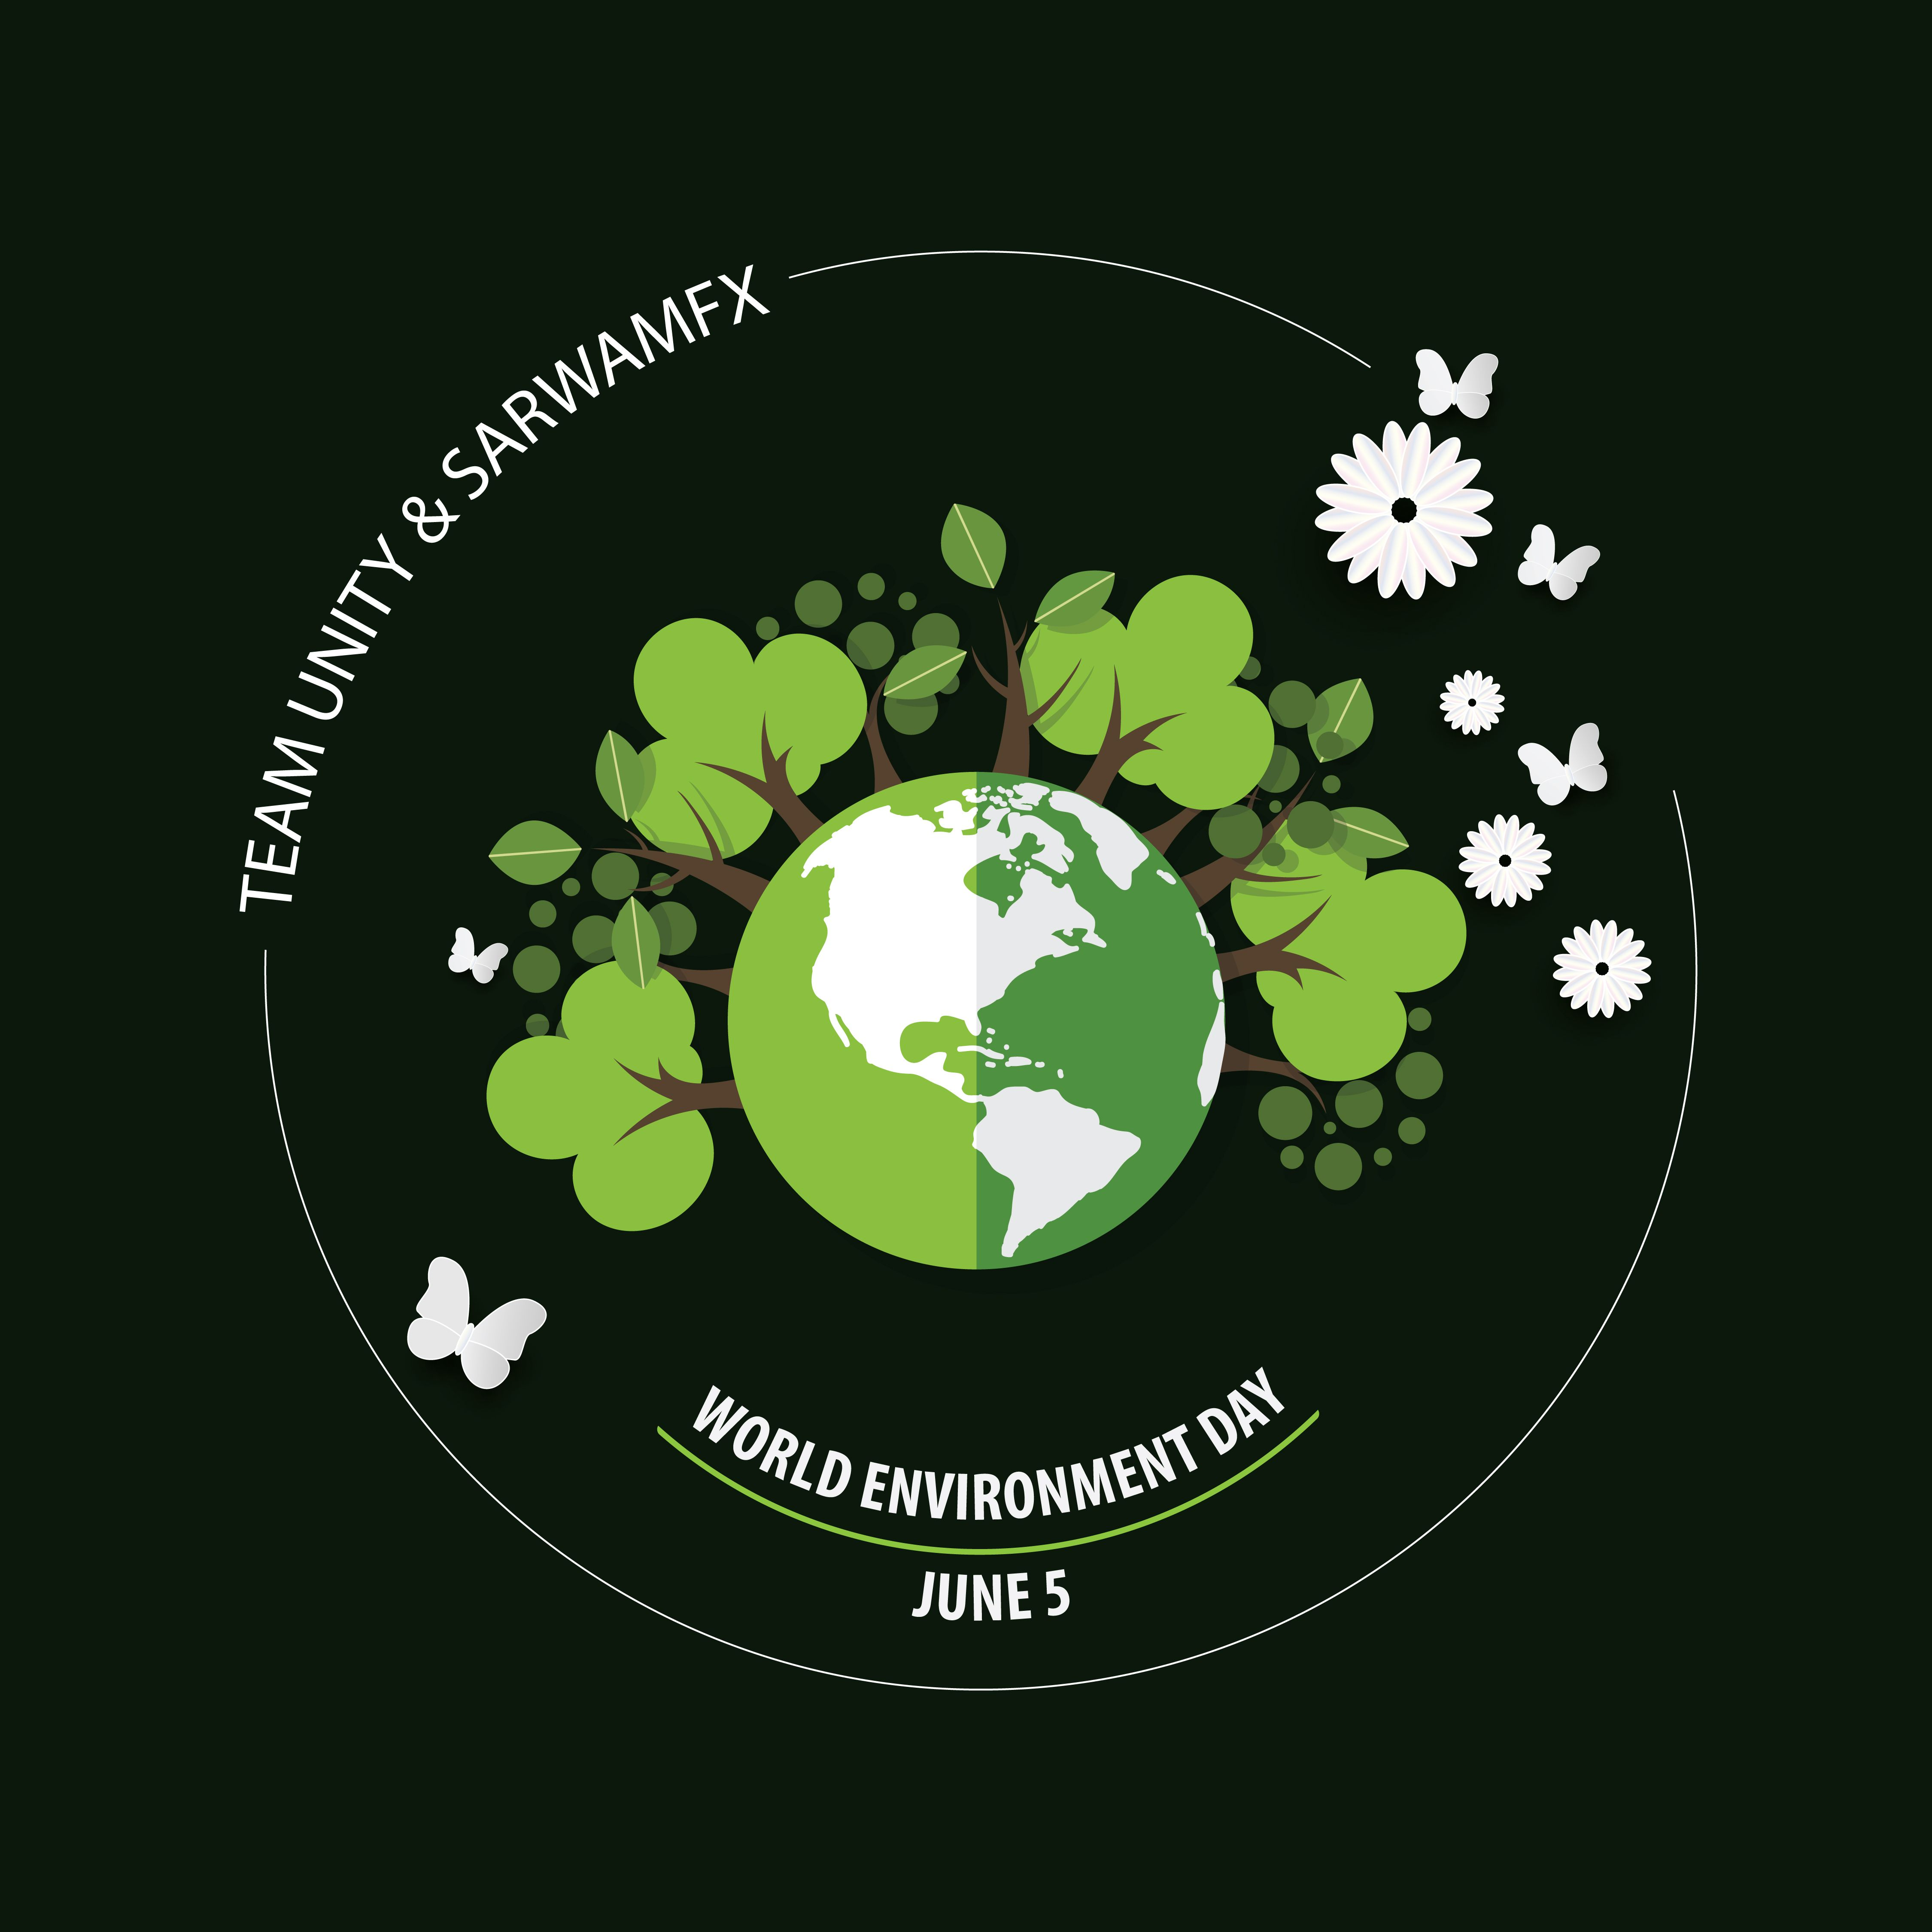 World Environment Day The theme of World Environment Day